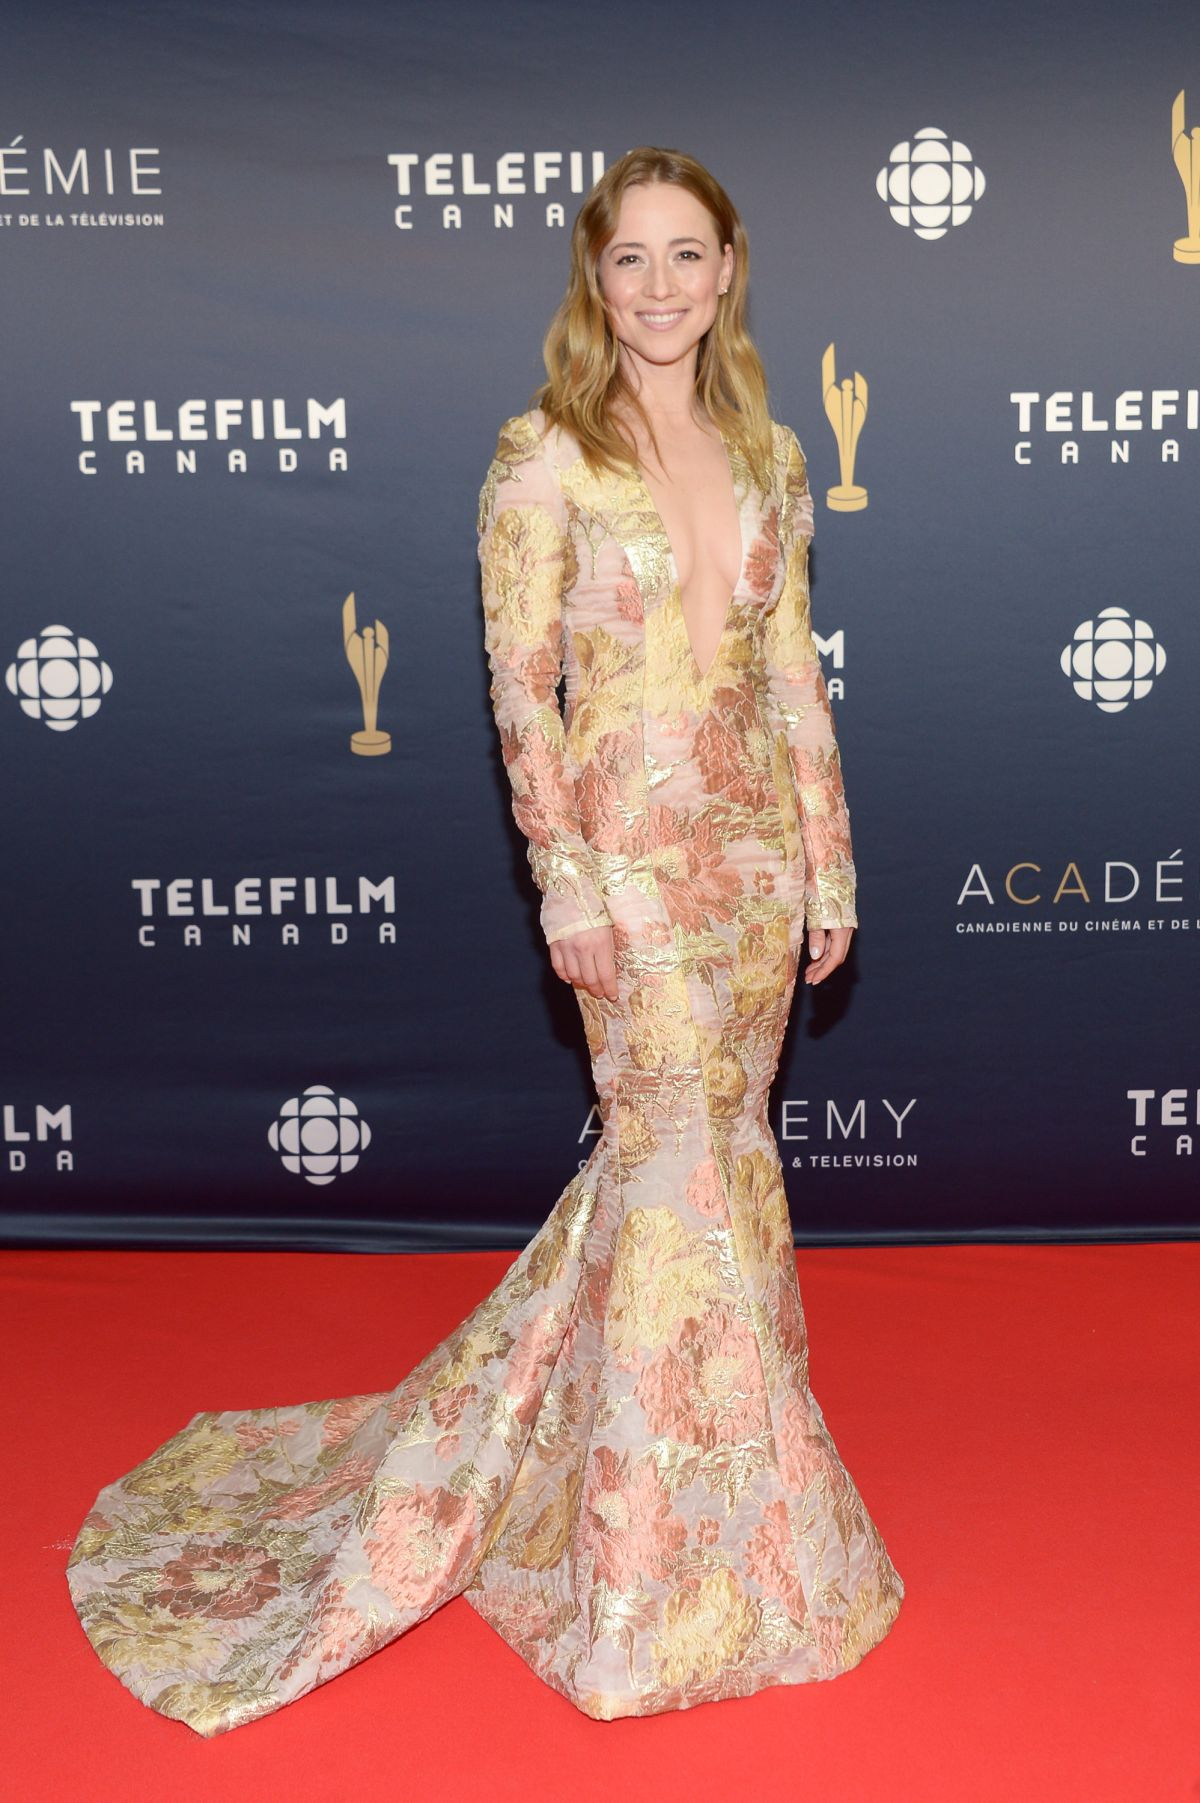 KARINE VANASSE at Canadian Screen Awards 2017 in Toronto 03/12/2017